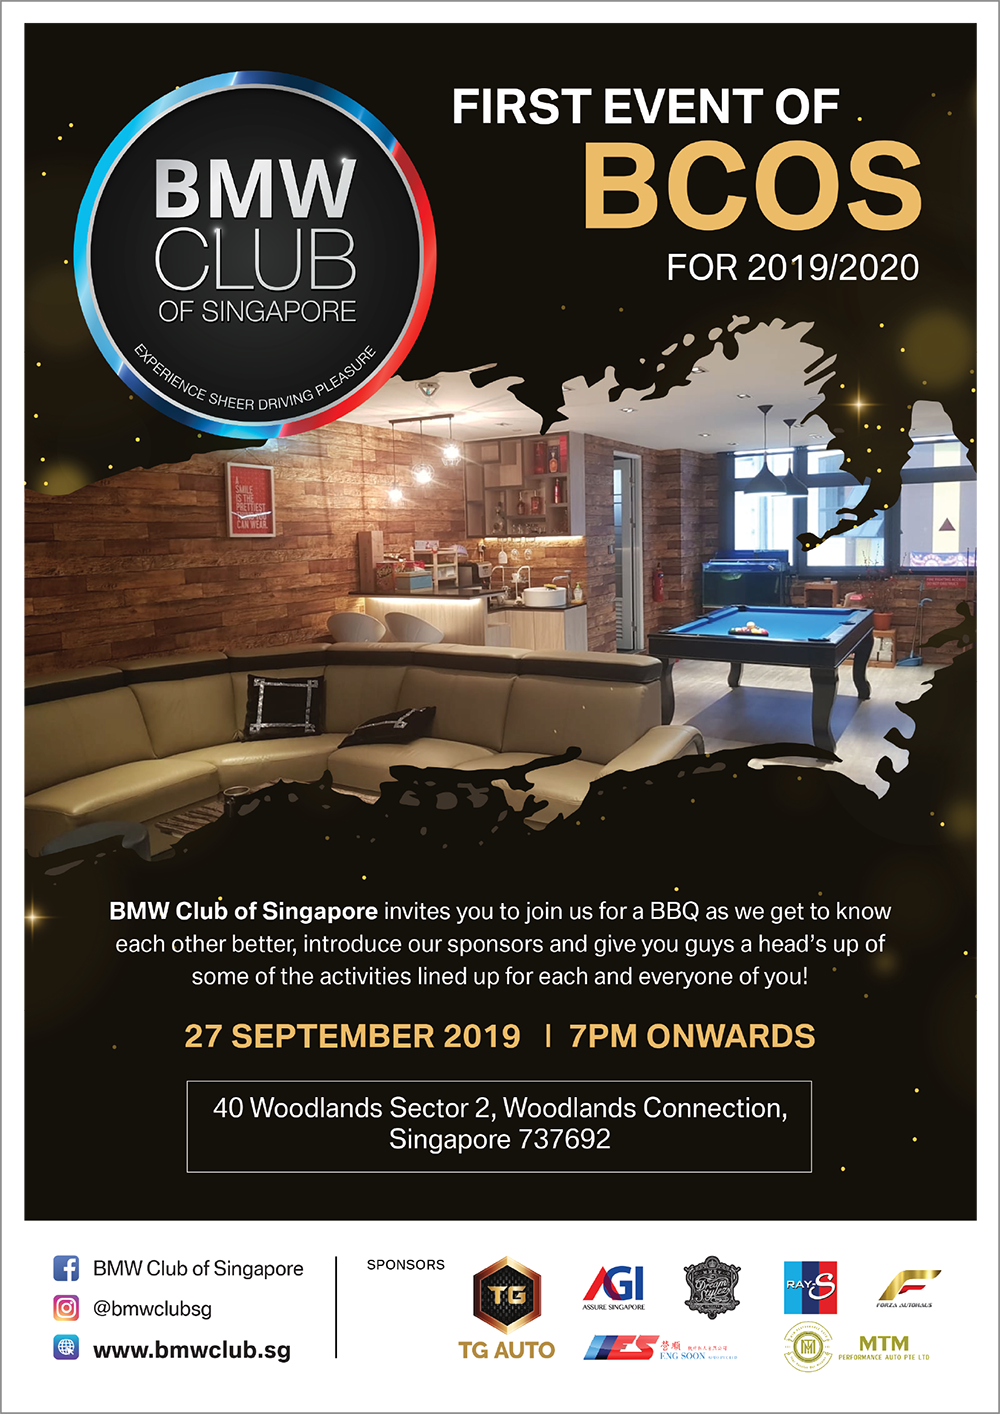 //bmwcarclub.sg/wp-content/uploads/2019/10/BCOS-Sep-2019-Event-Poster.png